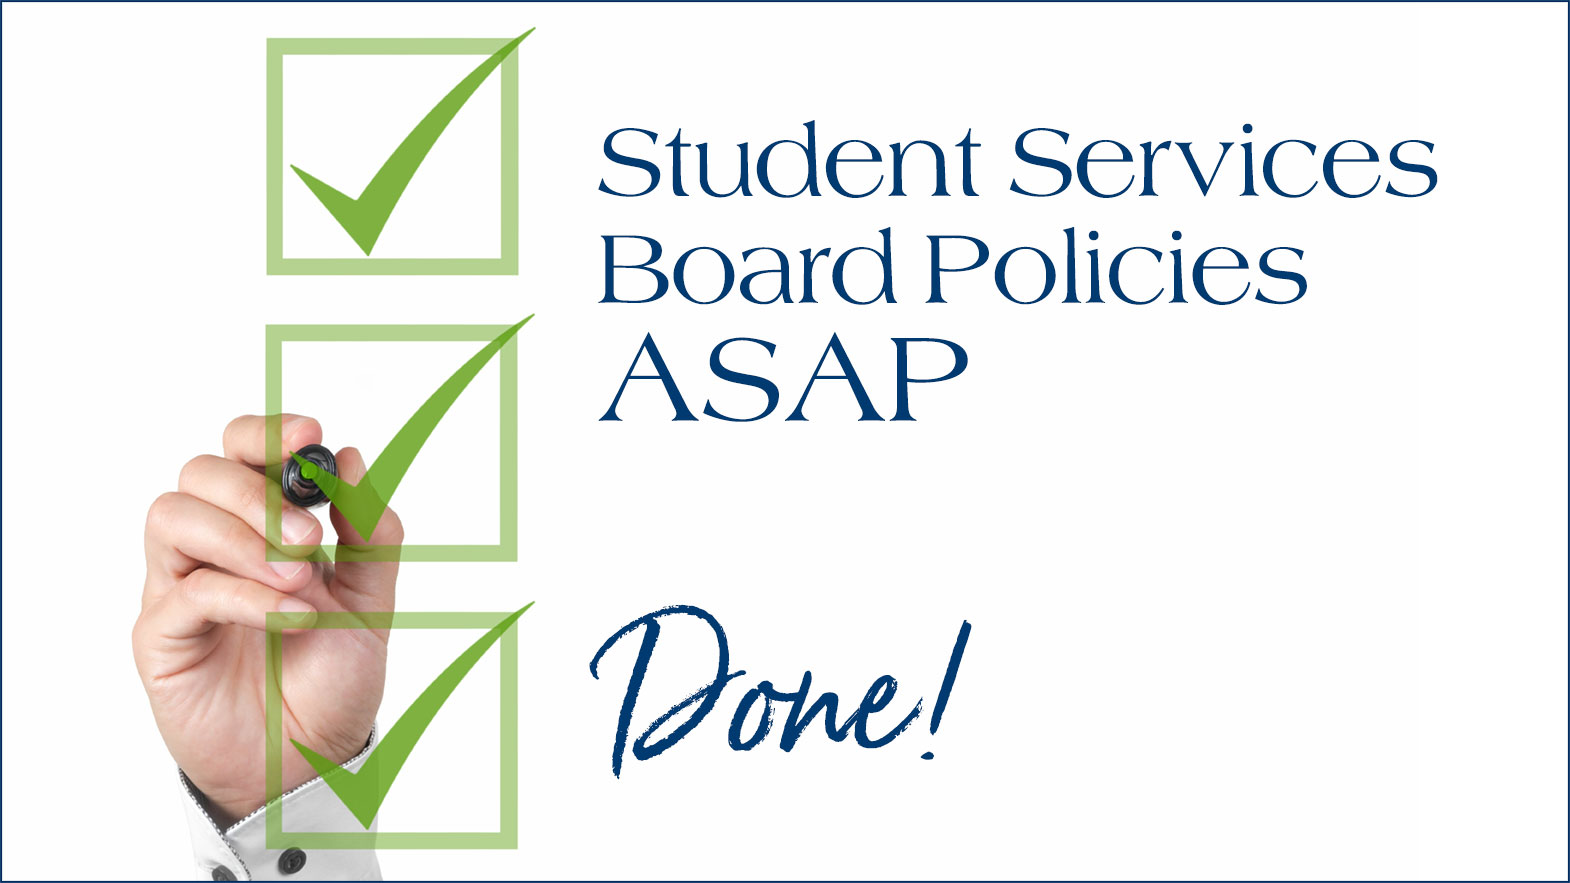 Student Services Board Policies ASAP